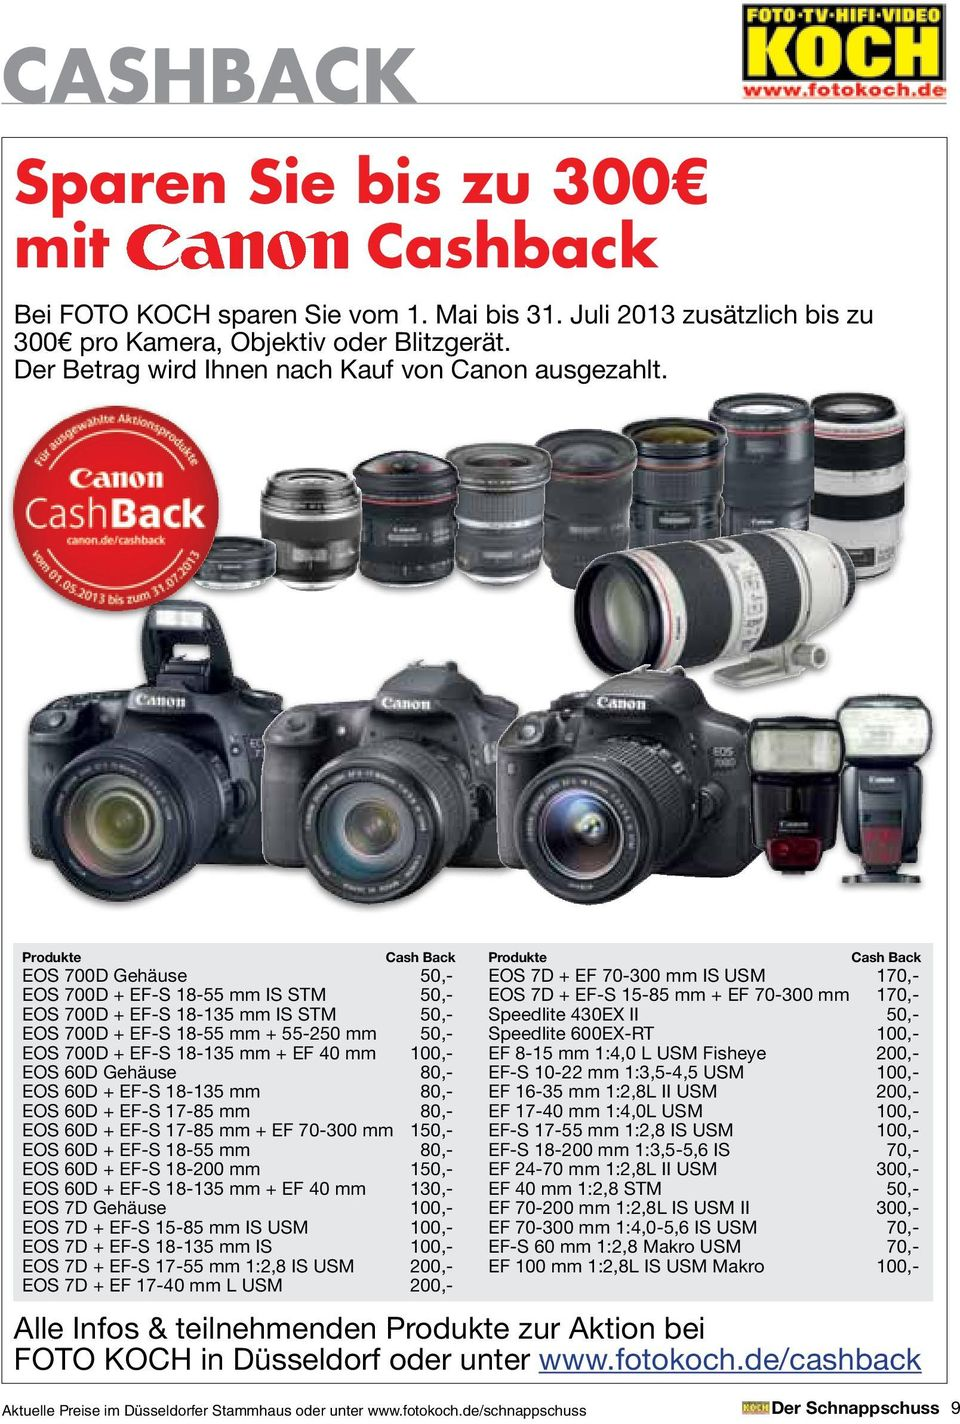 Produkte Cash Back EOS 700D Gehäuse 50,- EOS 700D + EF-S 18-55 mm IS STM 50,- EOS 700D + EF-S 18-135 mm IS STM 50,- EOS 700D + EF-S 18-55 mm + 55-250 mm 50,- EOS 700D + EF-S 18-135 mm + EF 40 mm